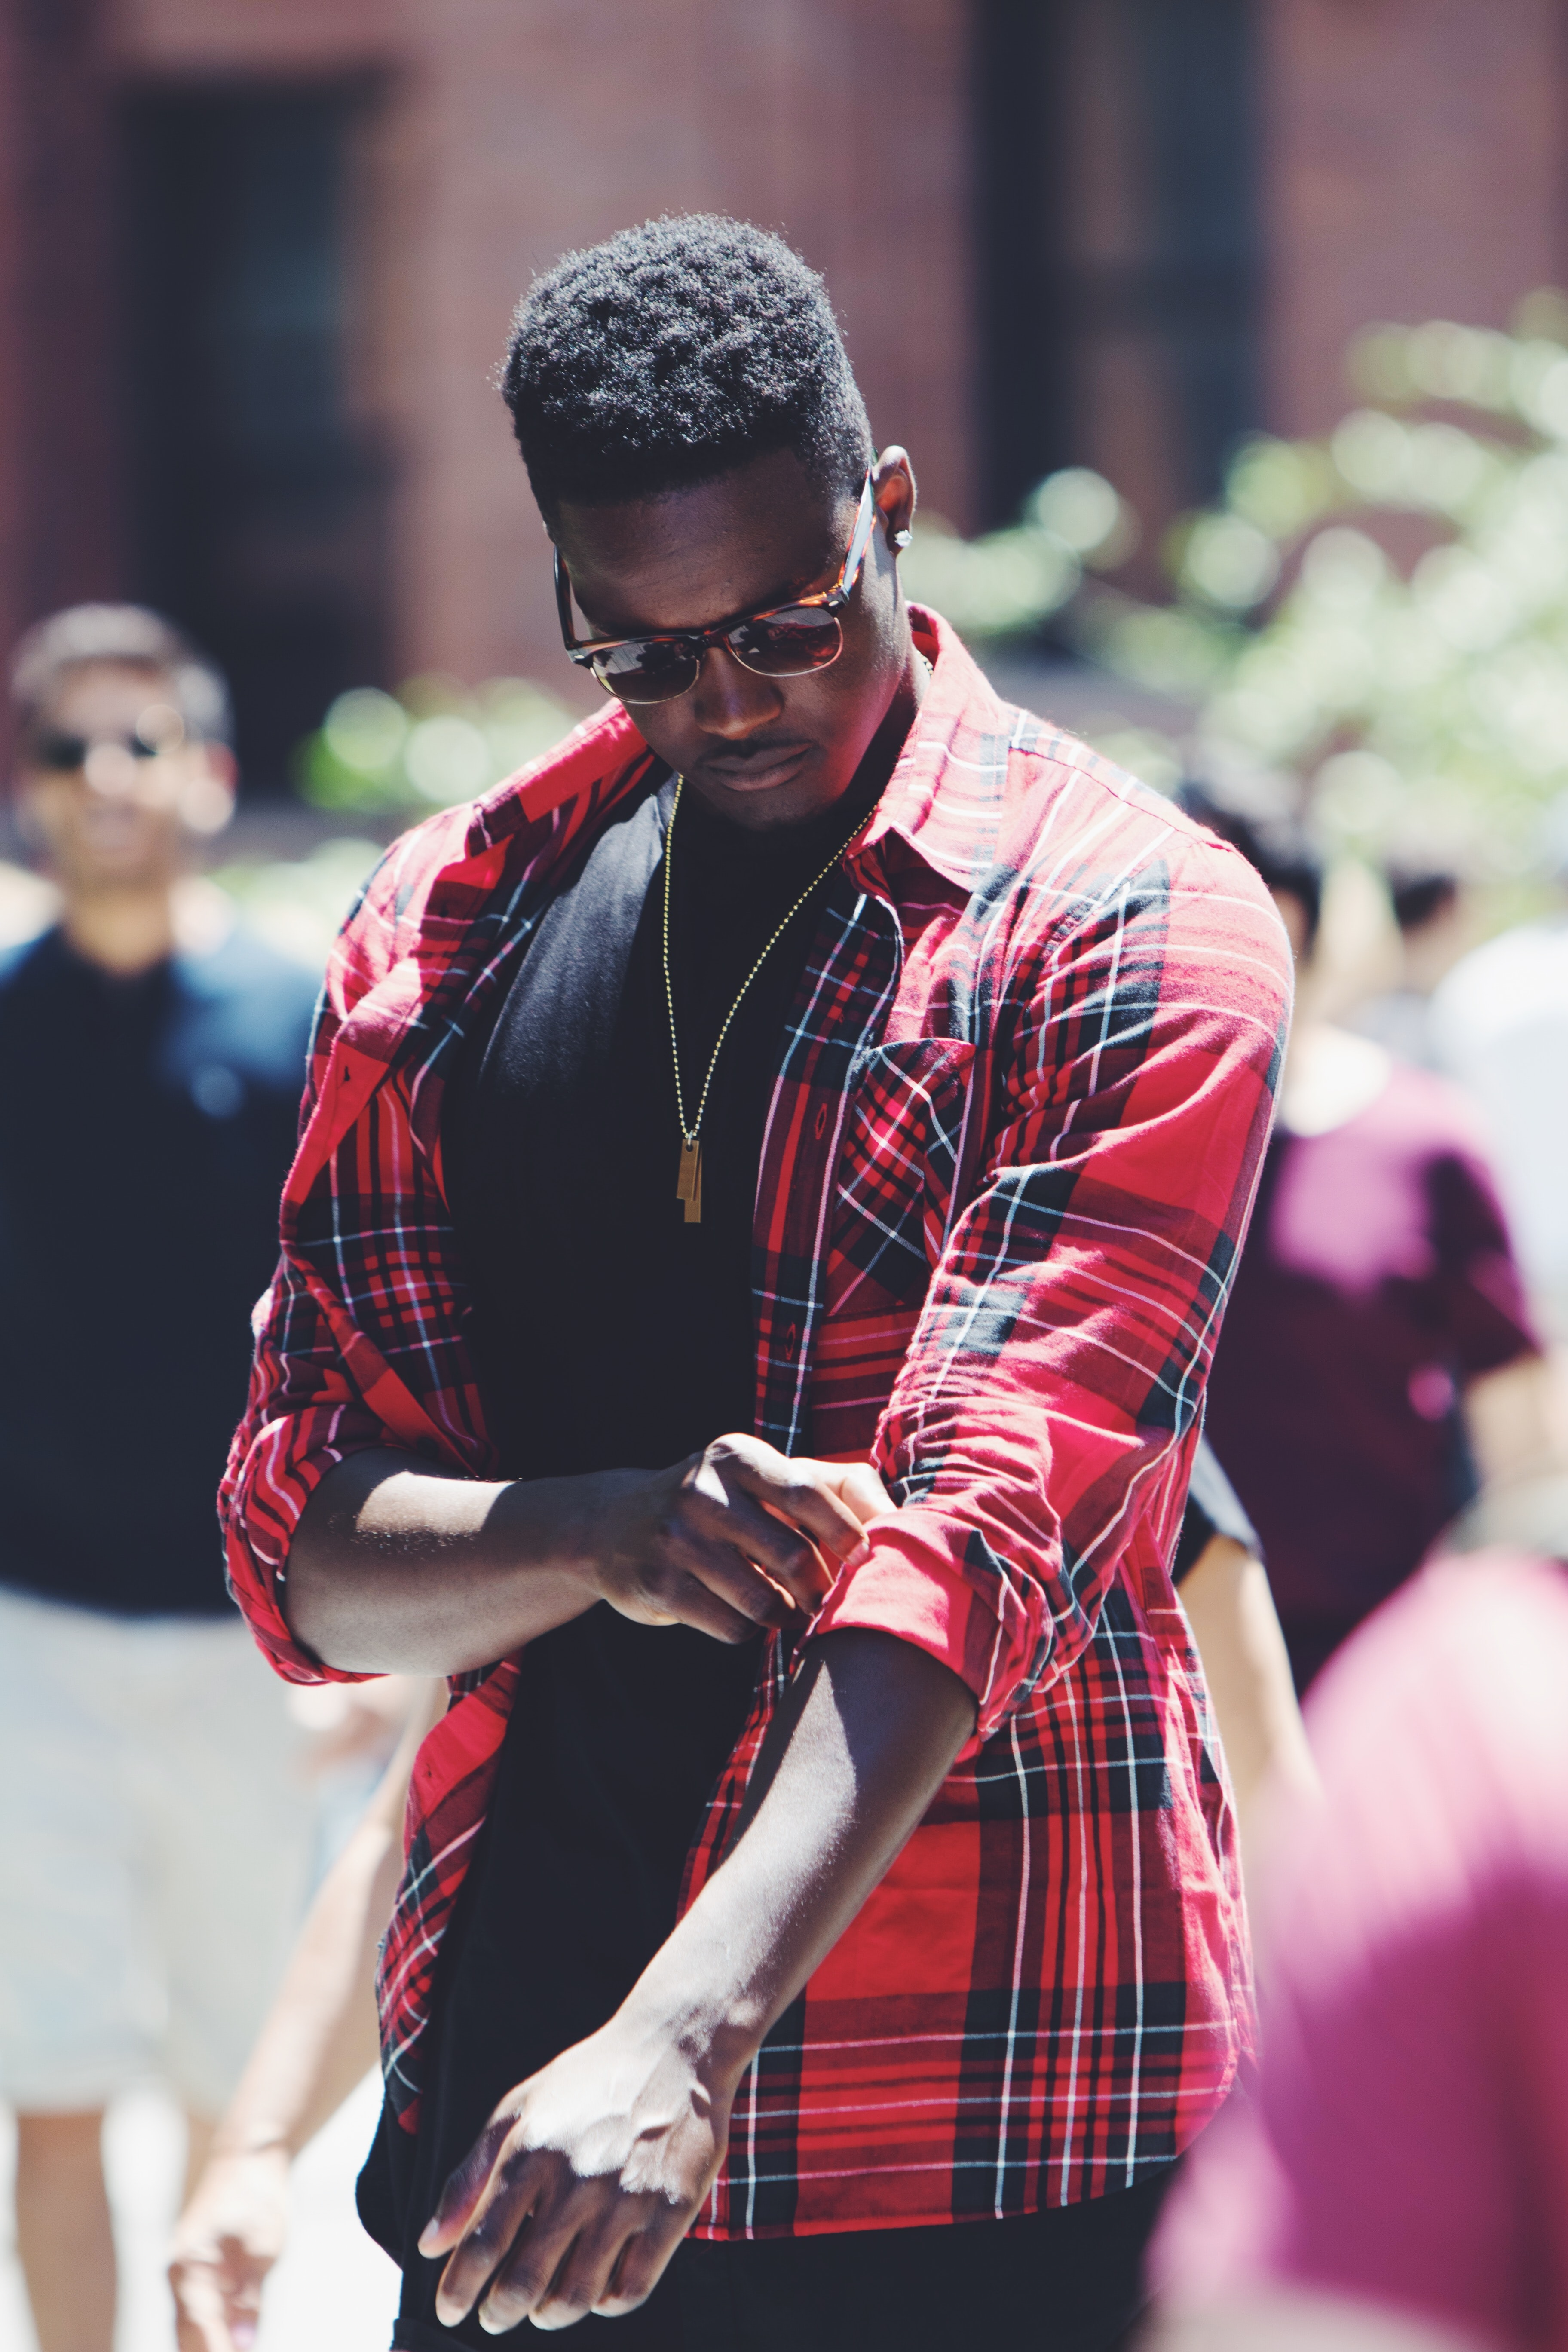 A man wearing ray ban sunglasses and a flannel shirt rolling sleeves